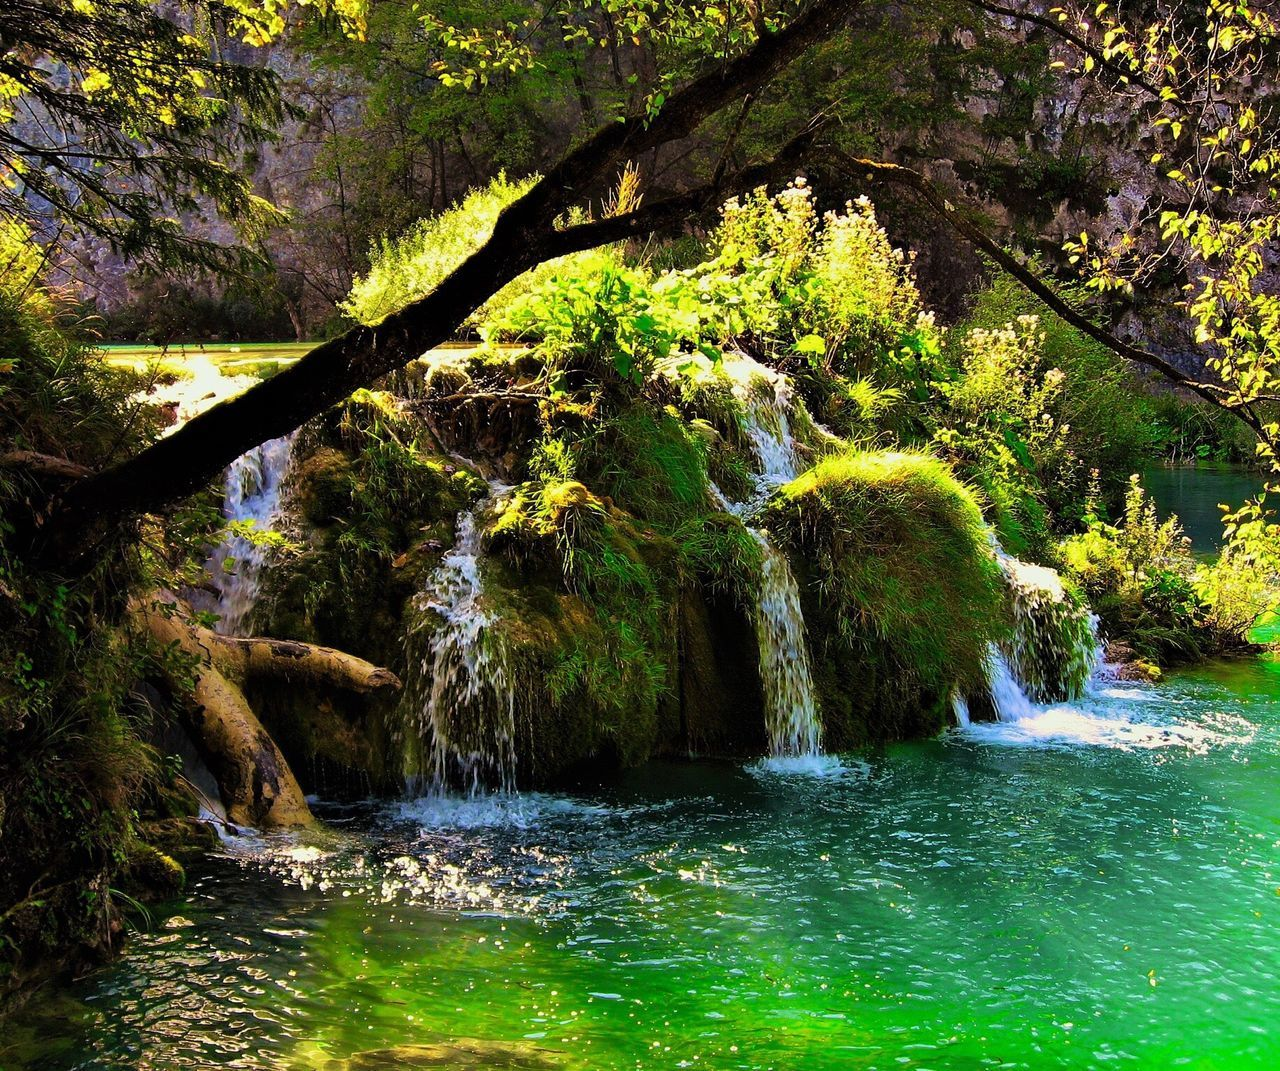 water, tree, beauty in nature, nature, flowing water, scenics, river, waterfall, waterfront, motion, tranquil scene, no people, outdoors, day, growth, tranquility, rock - object, green color, forest, branch, freshness